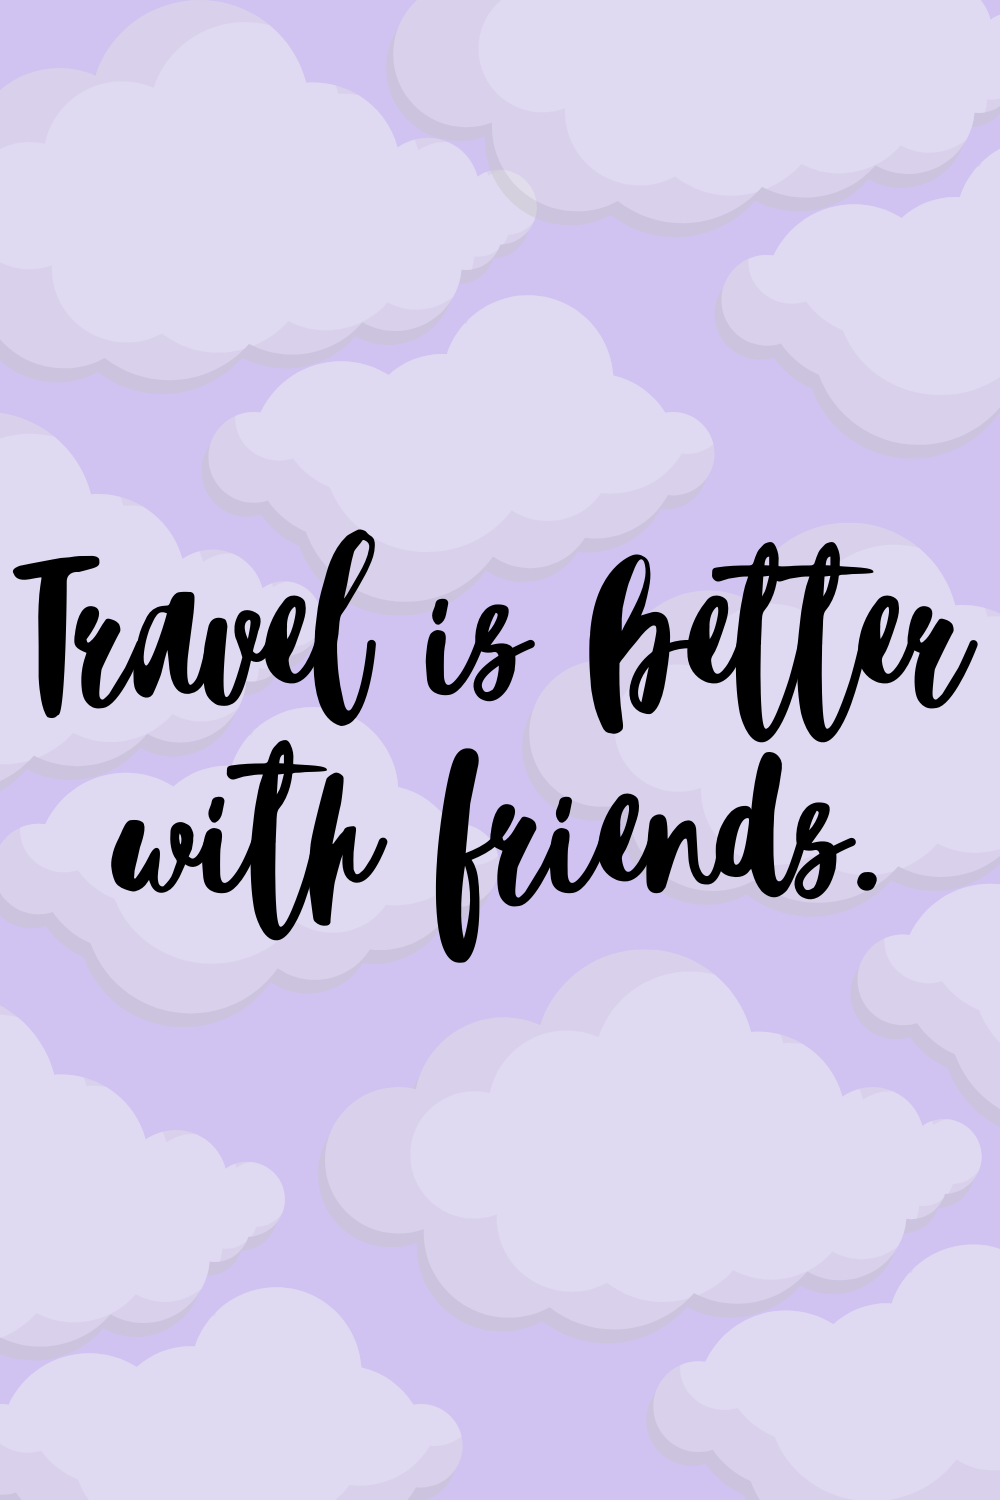 Cute Travel with Friends Quotes